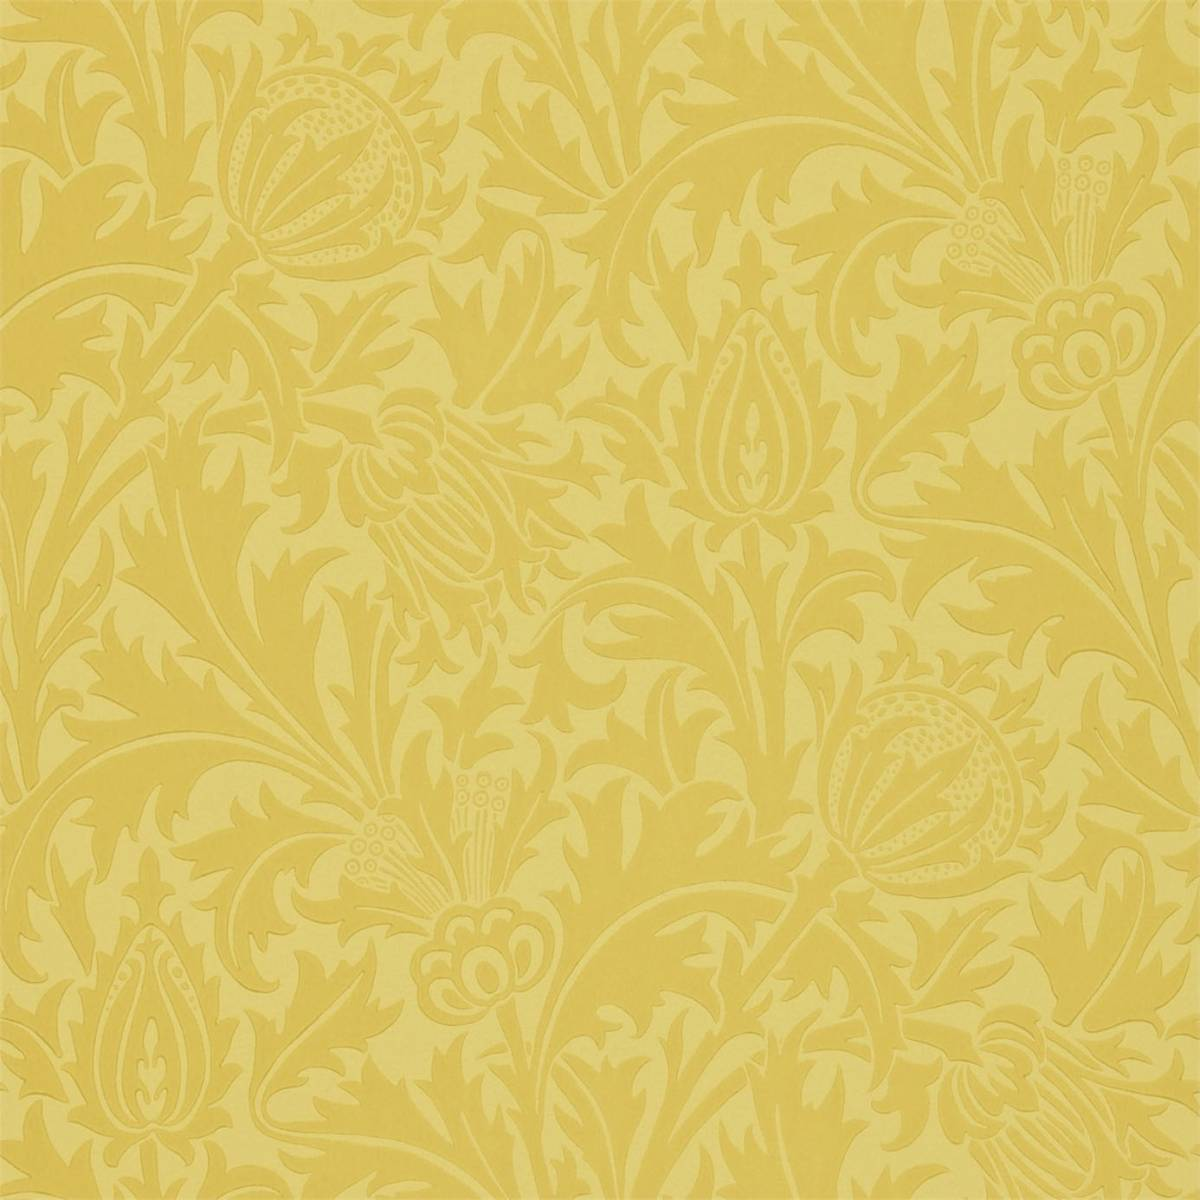 William Morris & Co Compendium II Wallpapers Thistle Wallpaper - Gold - 210484. Loading zoom